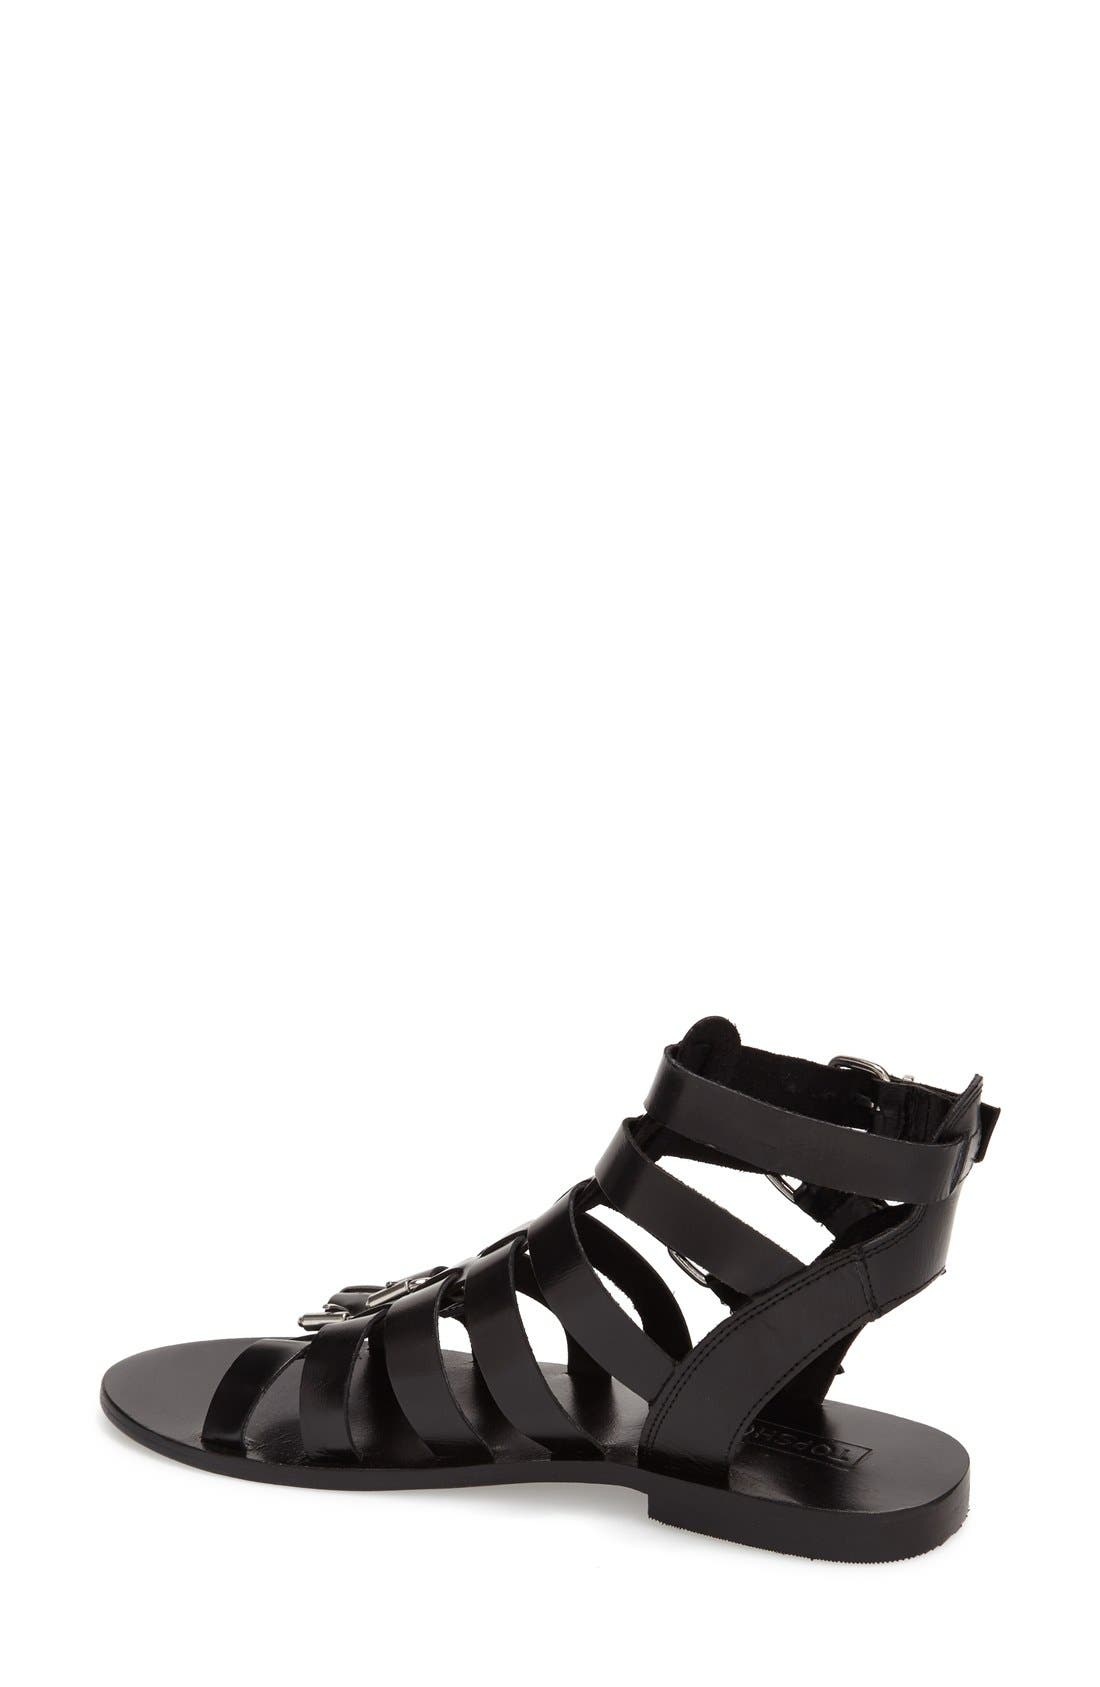 Alternate Image 2  - Topshop 'Favorite' Flat Gladiator Sandal (Women)